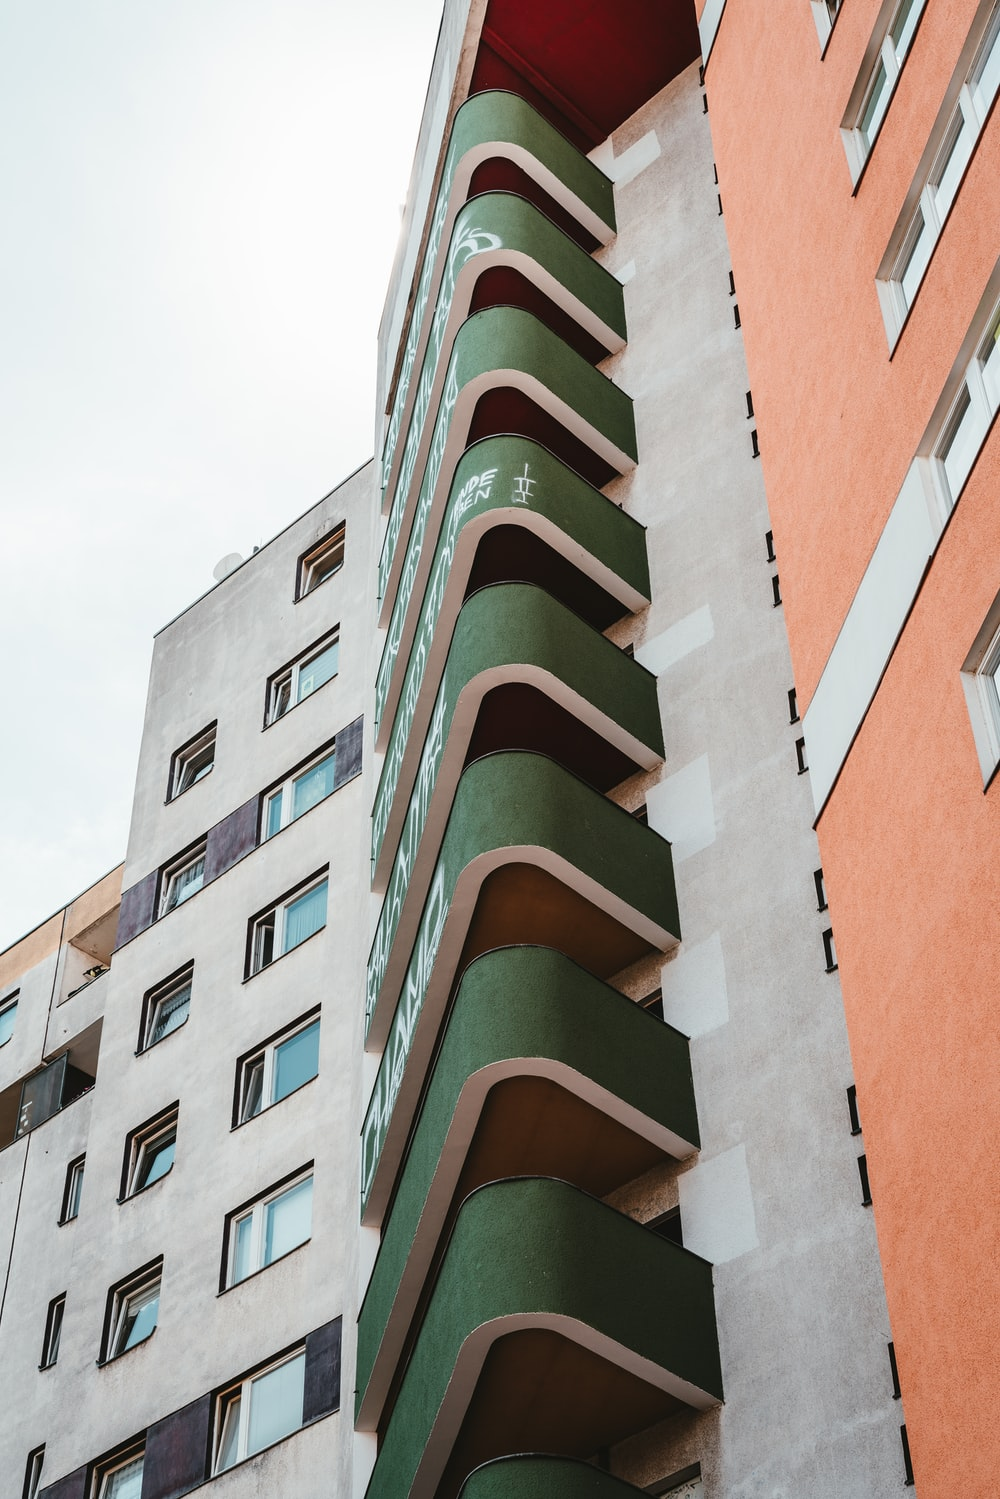 brown and green concrete building